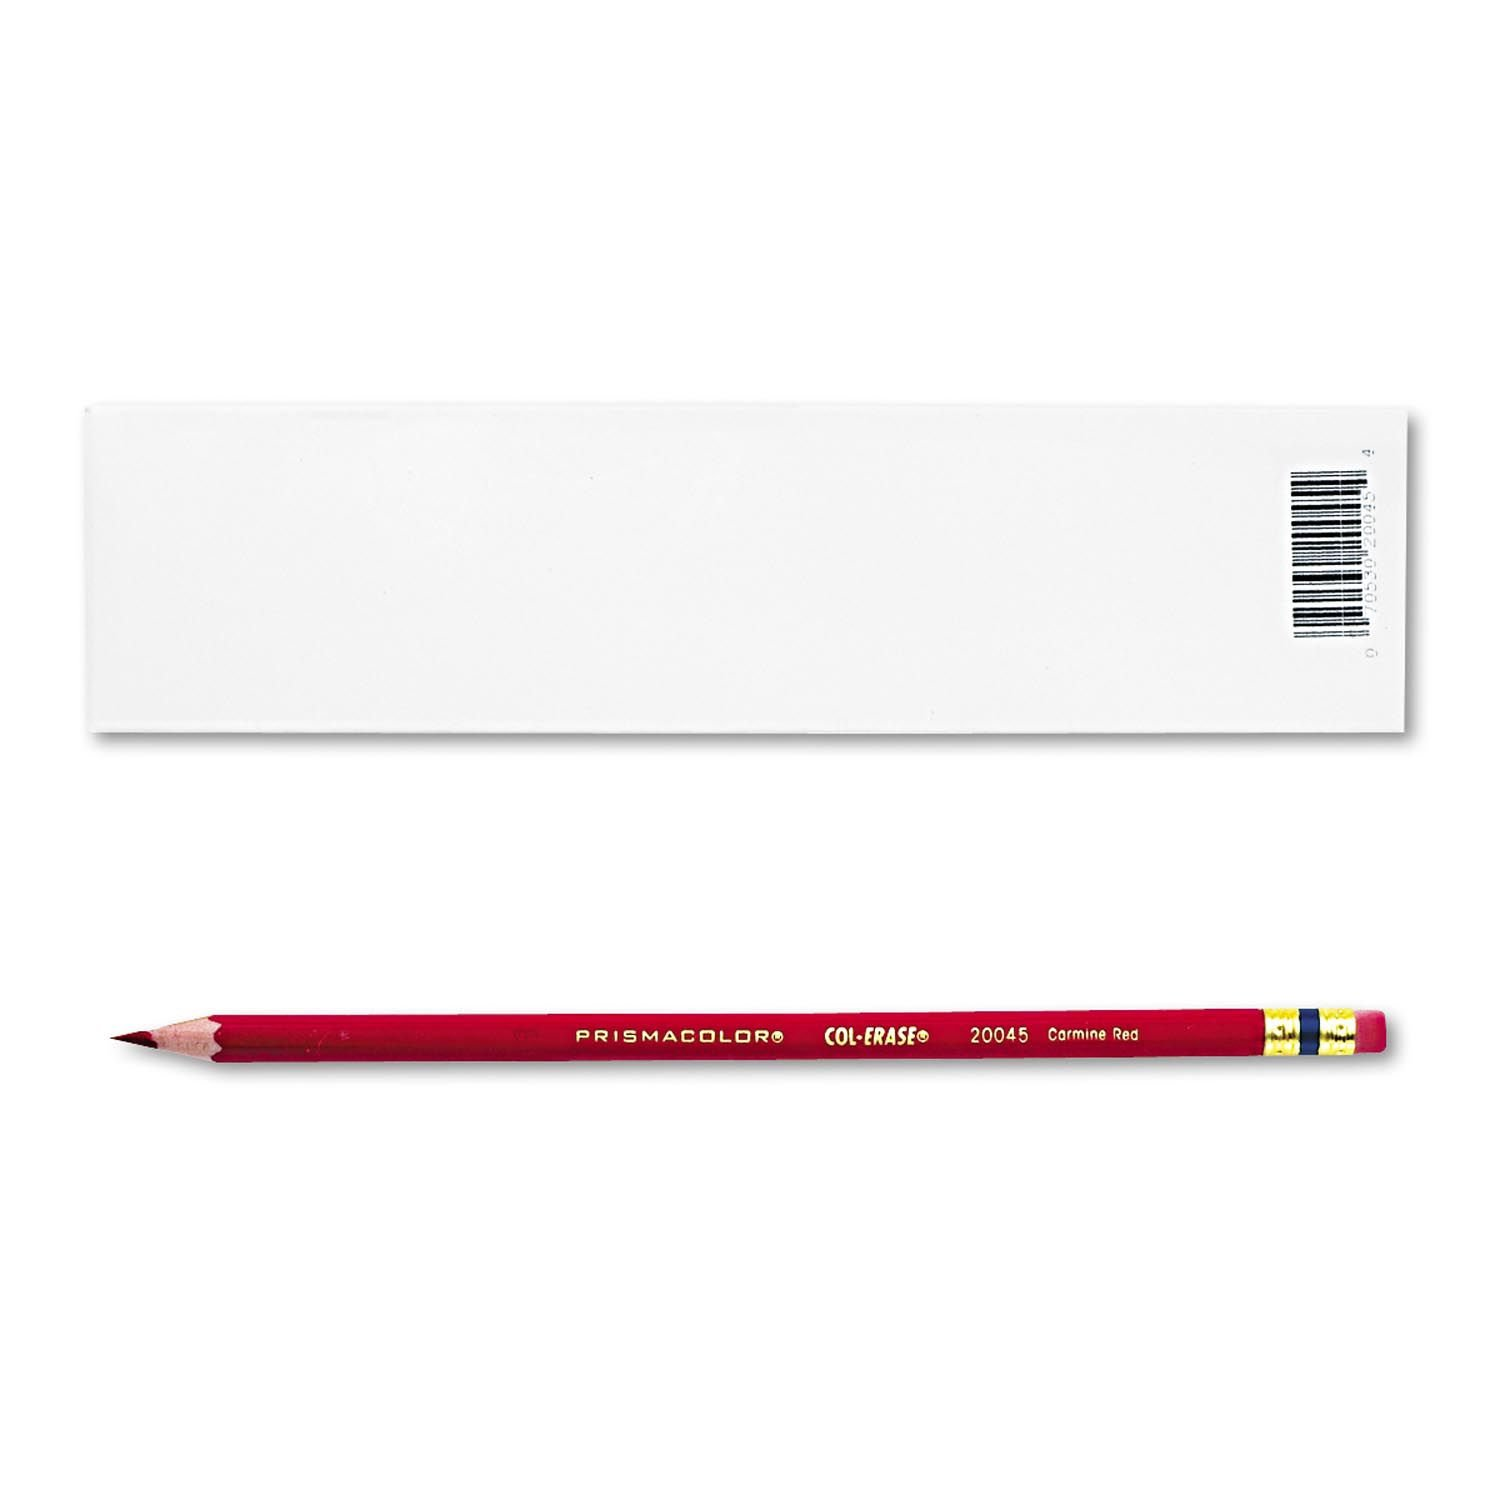 2 DOZEN: Prismacolor Col-Erase Erasable Colored Pencil Carmine Red by Prismacolor